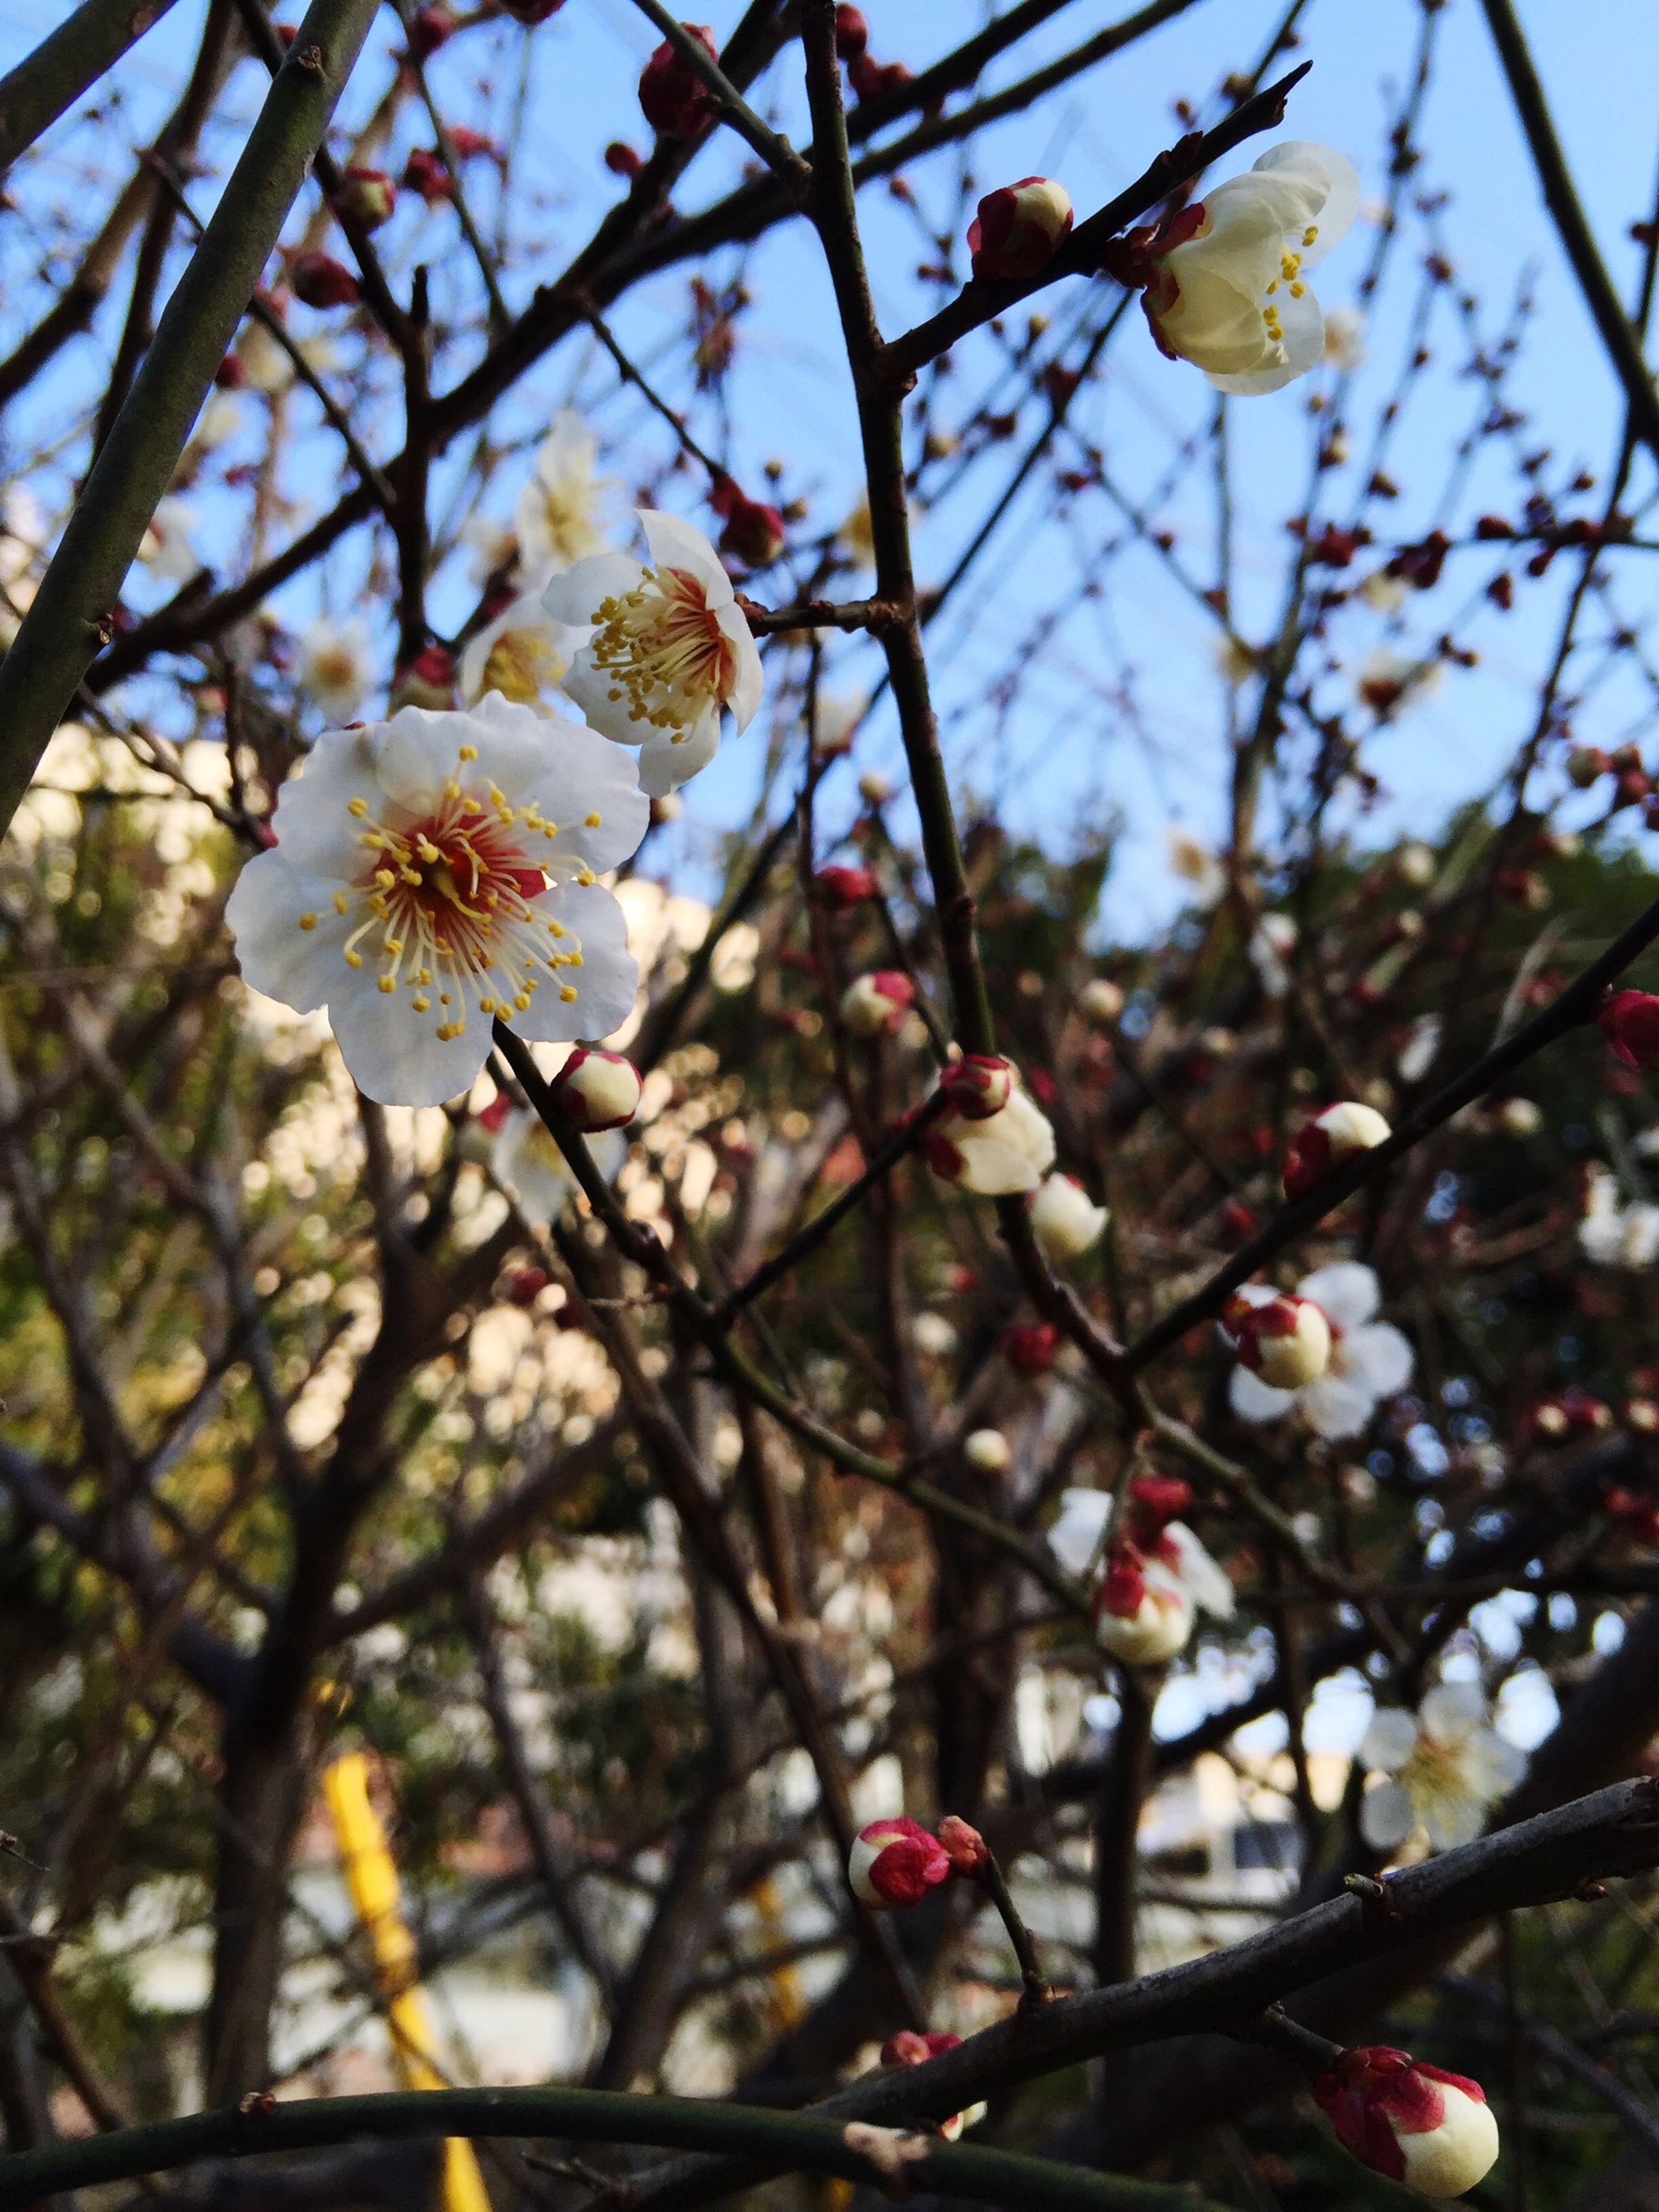 flower, freshness, branch, growth, fragility, tree, beauty in nature, low angle view, nature, focus on foreground, close-up, blossom, petal, blooming, in bloom, twig, cherry tree, springtime, flower head, cherry blossom